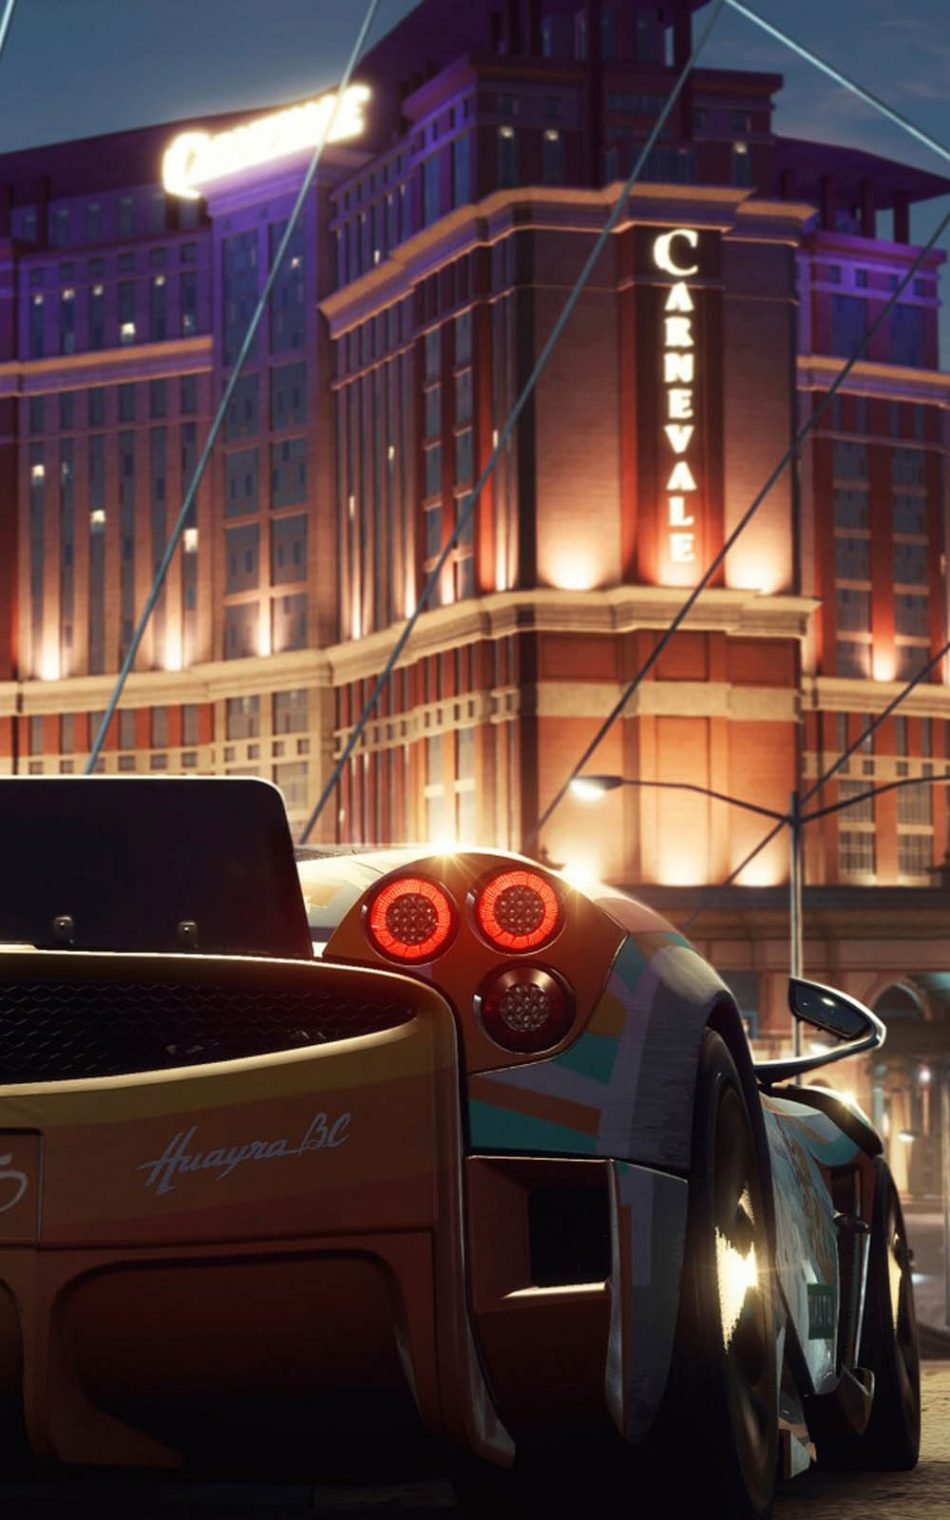 Need For Speed Payback 2017 Game Free 4k Ultra Hd Mobile Wallpaper